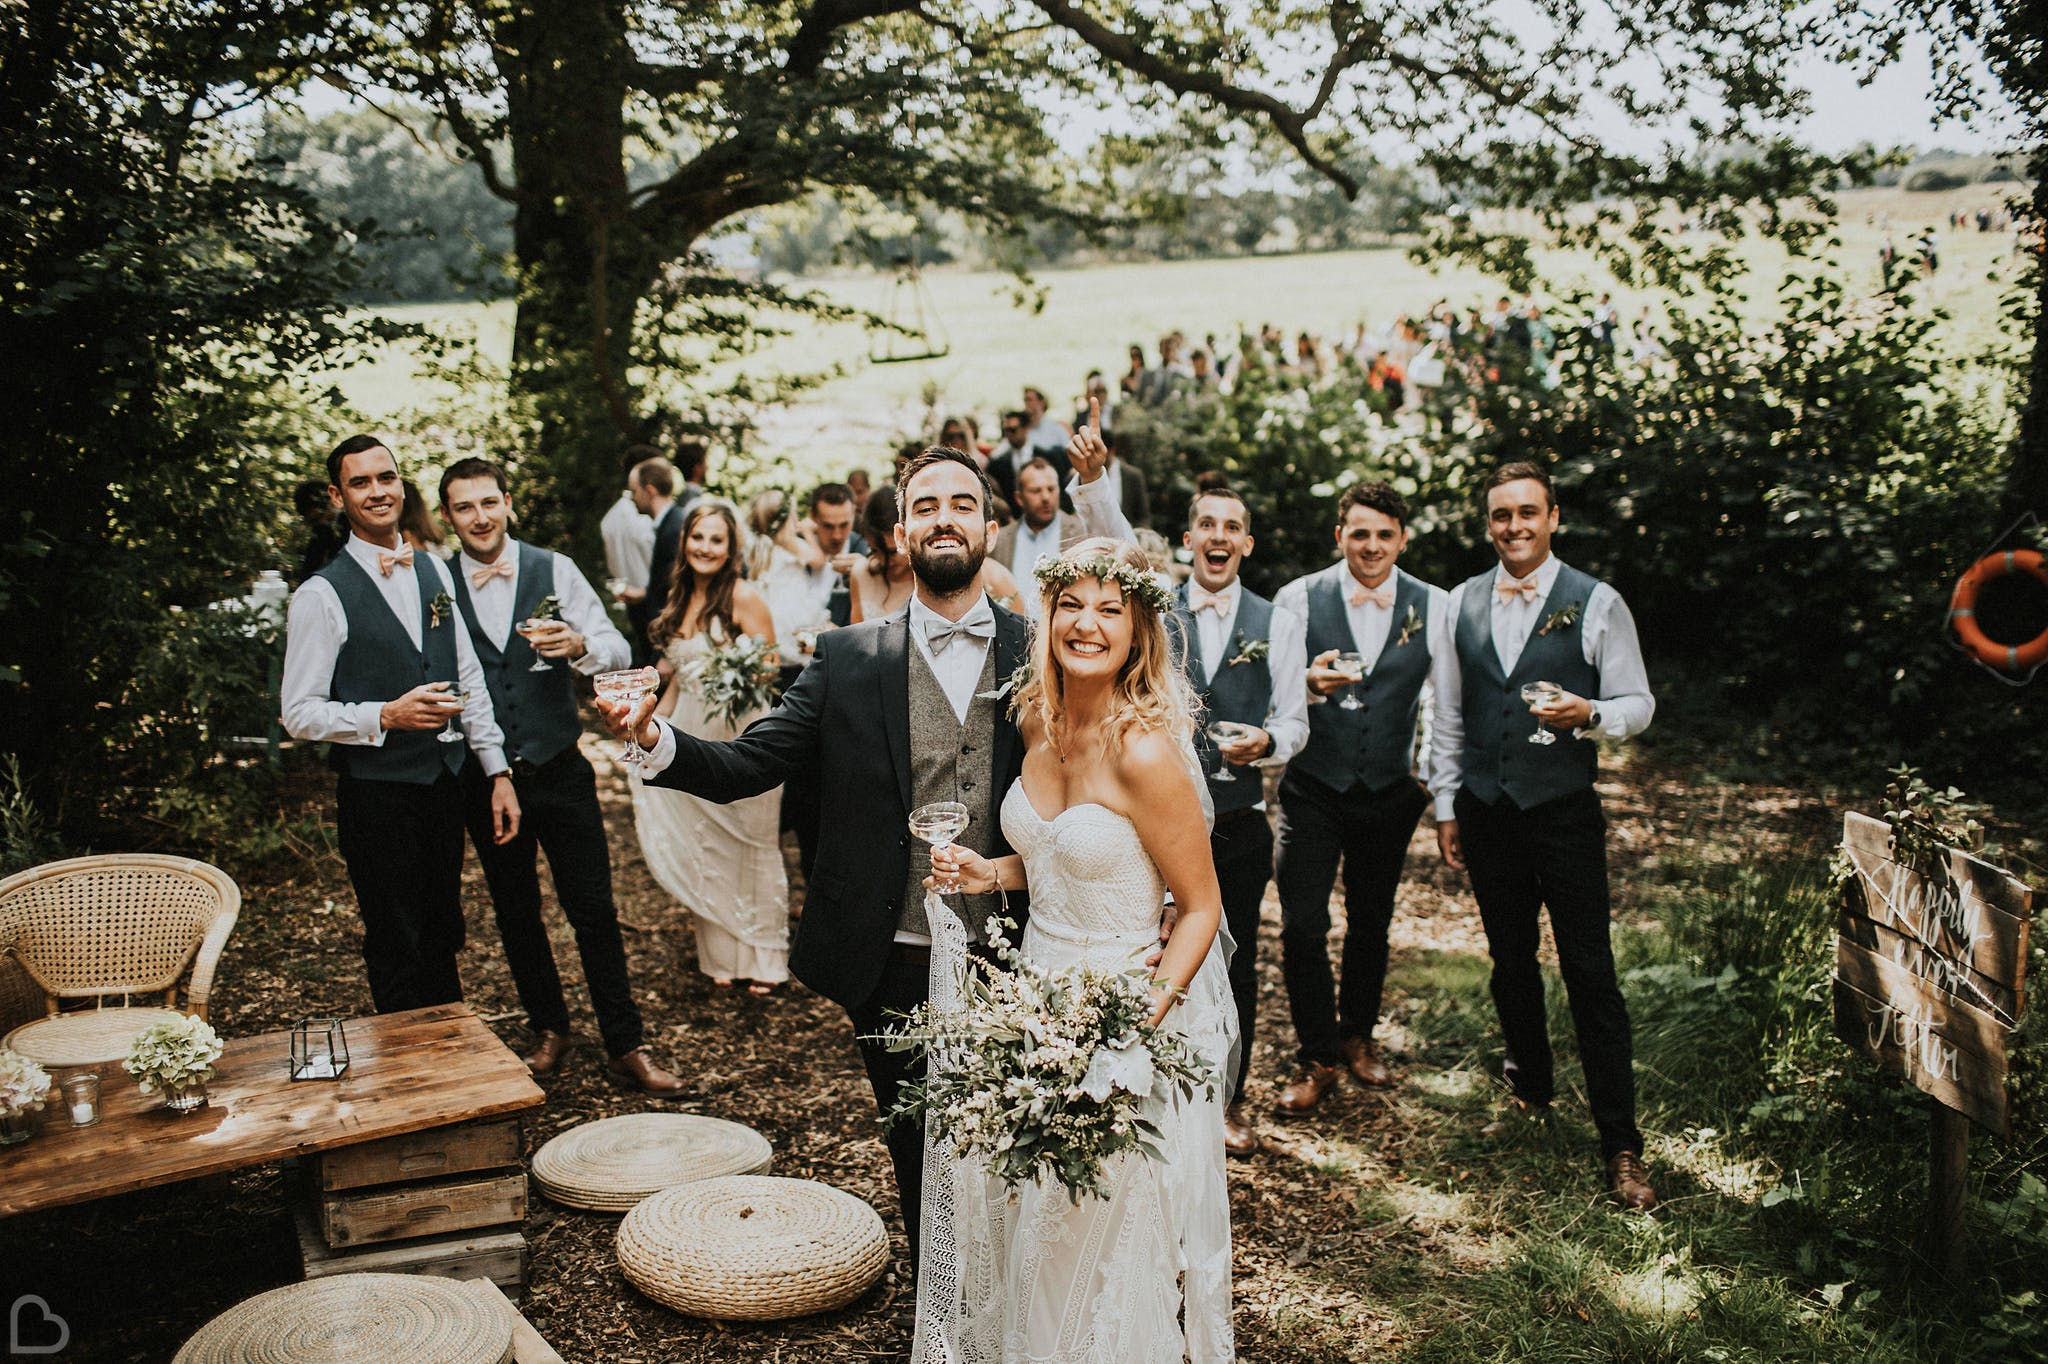 Bride with flower crown and groom celebrating their wedding outdoors with loved ones